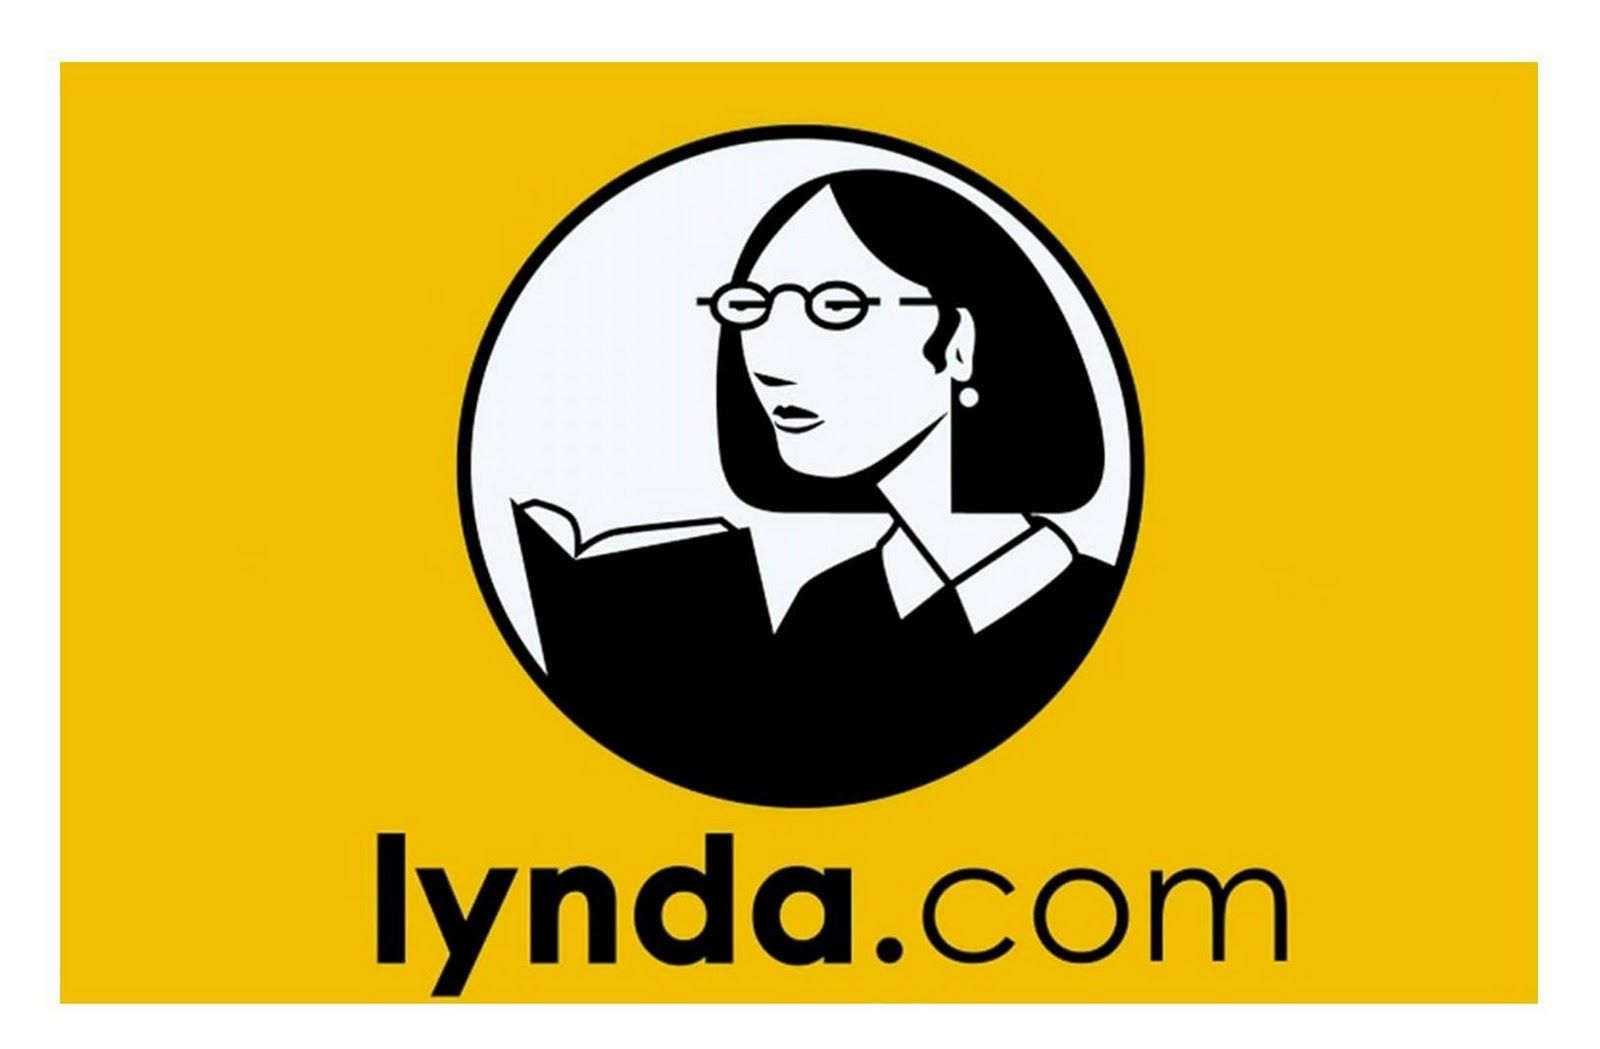 Getting started with Lynda.com